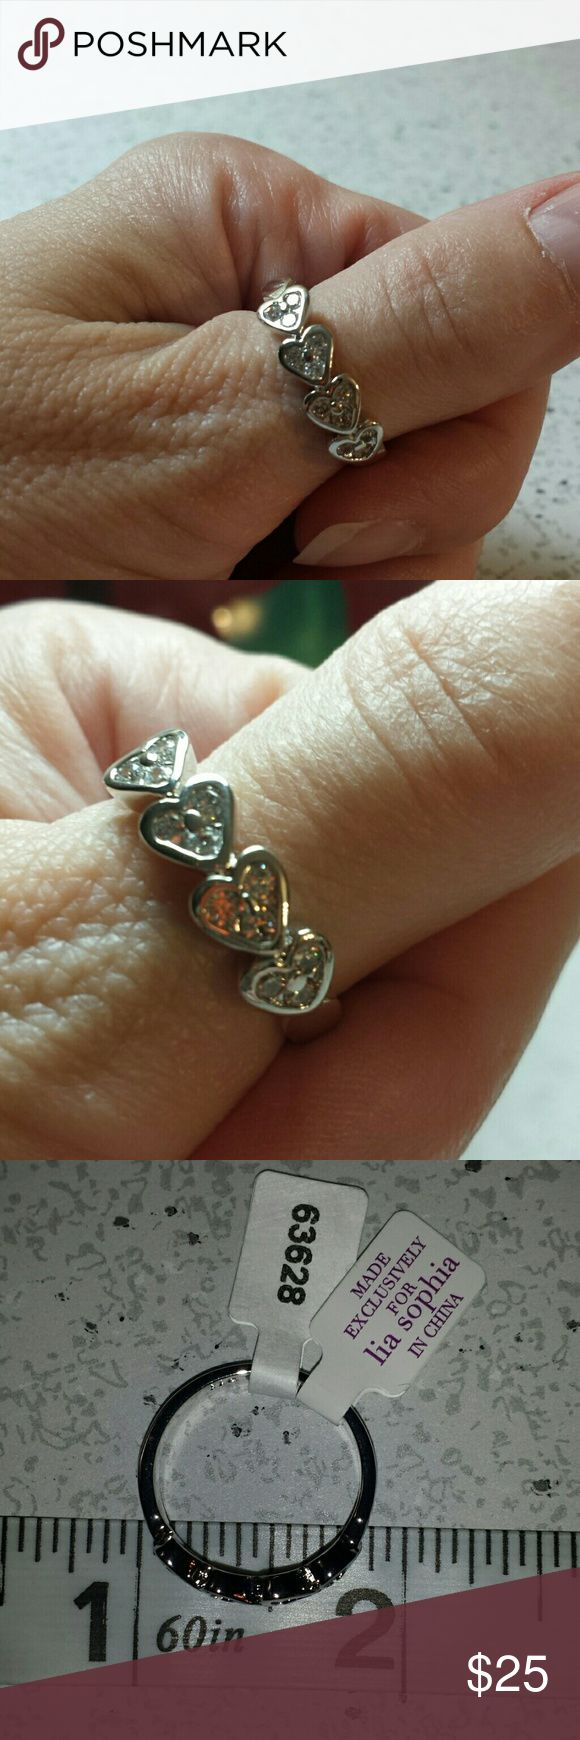 """NWT Lia Sophia size 9 Silver """"Admire"""" Ring Lia Sophia, New with tags, 4 very pretty silver hearts with tiny crystals, size 9 Lia Sophia Jewelry Rings"""